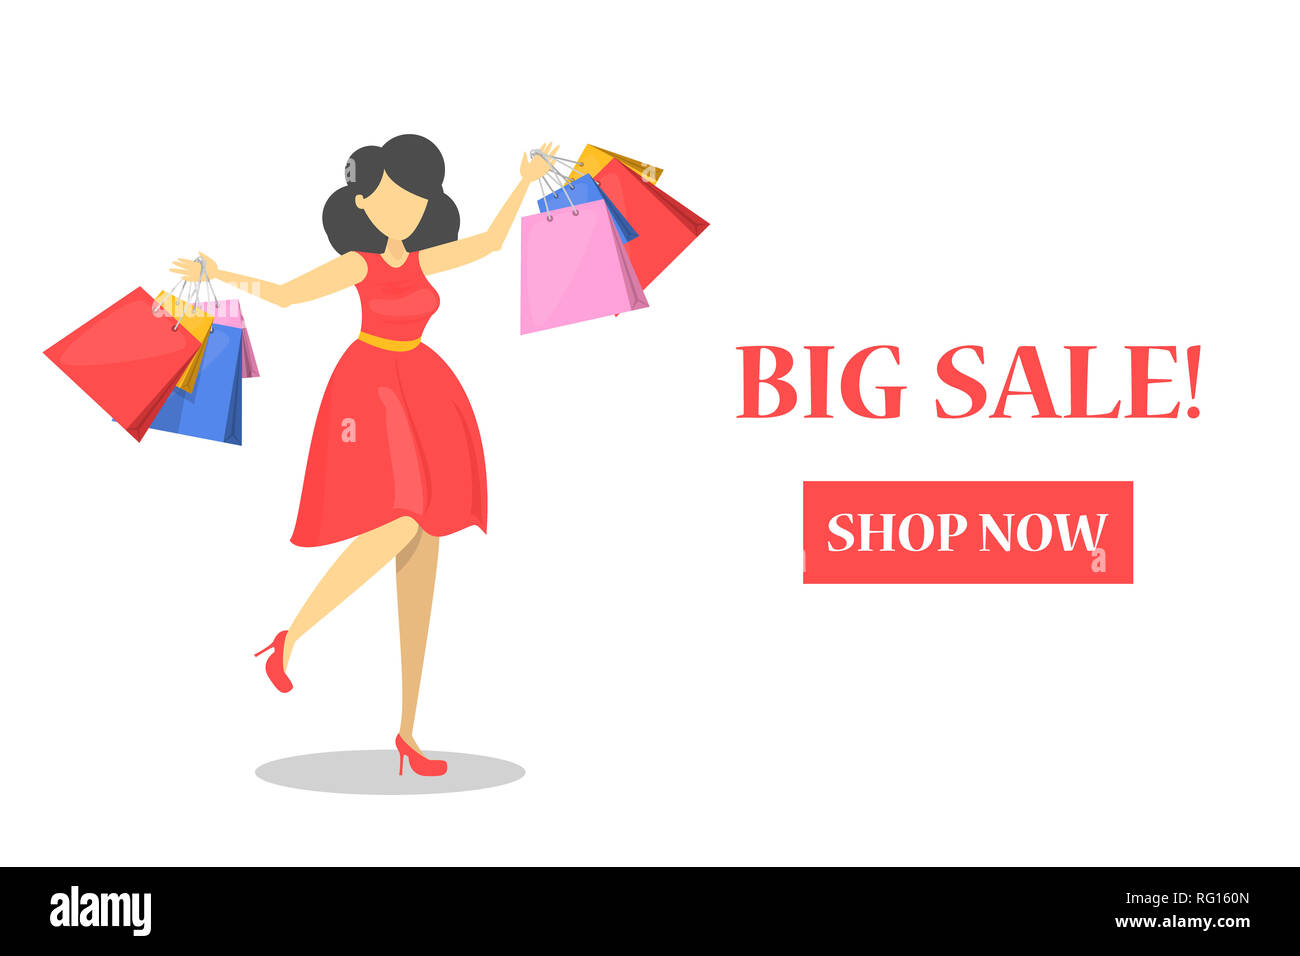 Happy Beautiful Woman In Red Dress With Shopping Bags Web Banner For Online Store Big Sale Poster Black Friday E Commerce And Big Discount Stock Photo Alamy